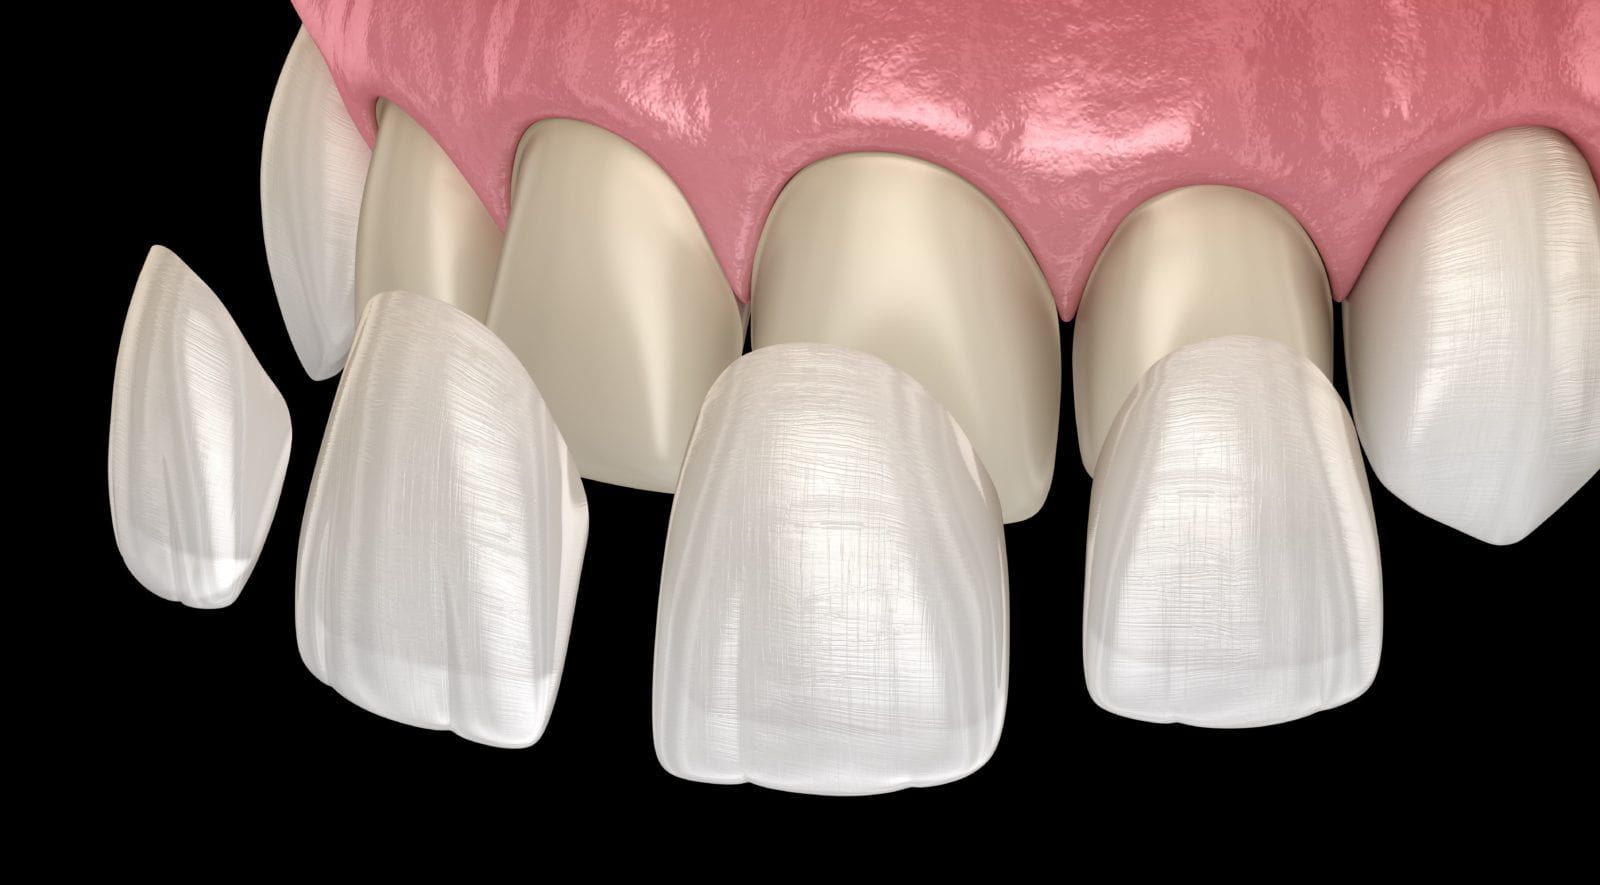 dental veneers shown over natural teeth